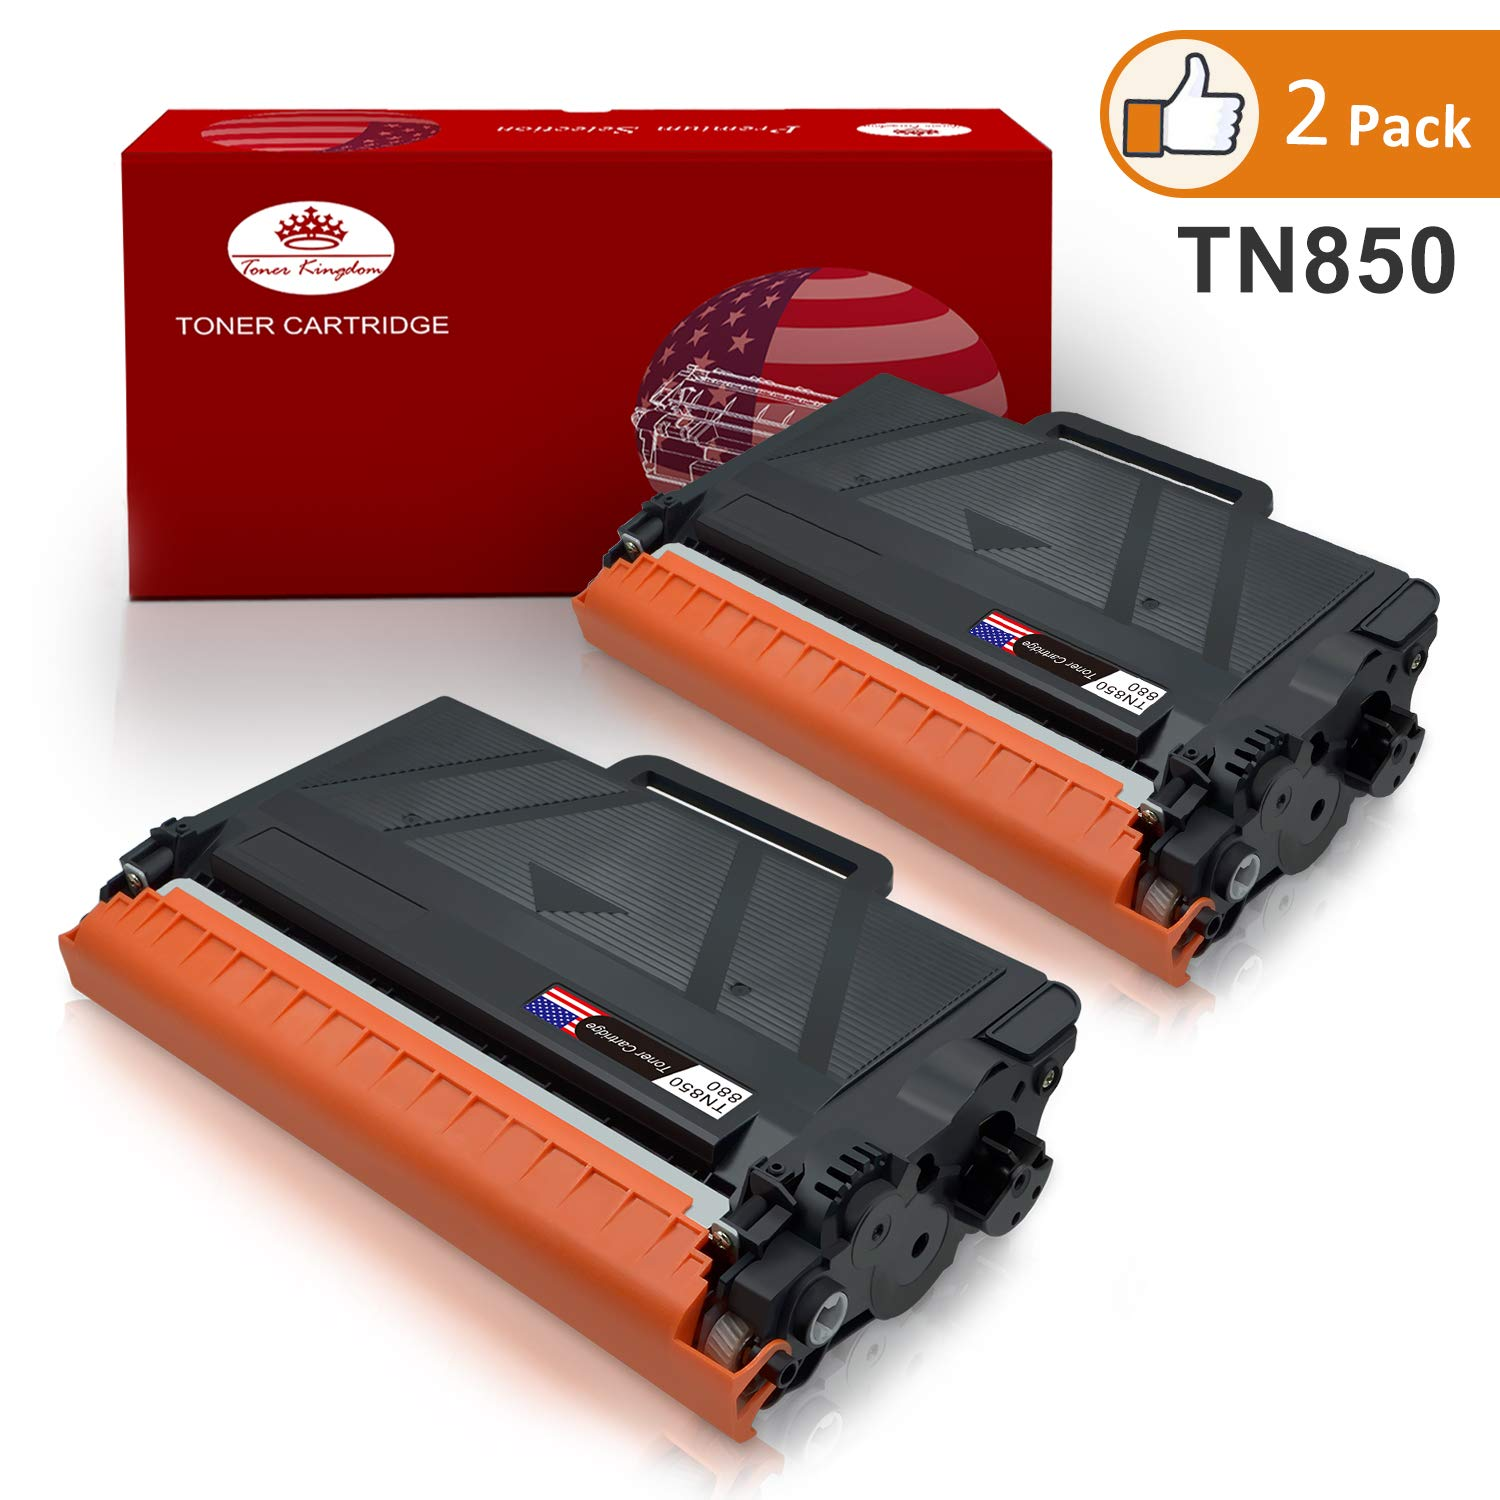 TN850 High Yield Toner Cartridge Toner Kingdom Replacement for Brother TN-850 TN820 Compatible with Brother HL-L5100DN HLL6200DW MFC L5850DW L6800DW Printer